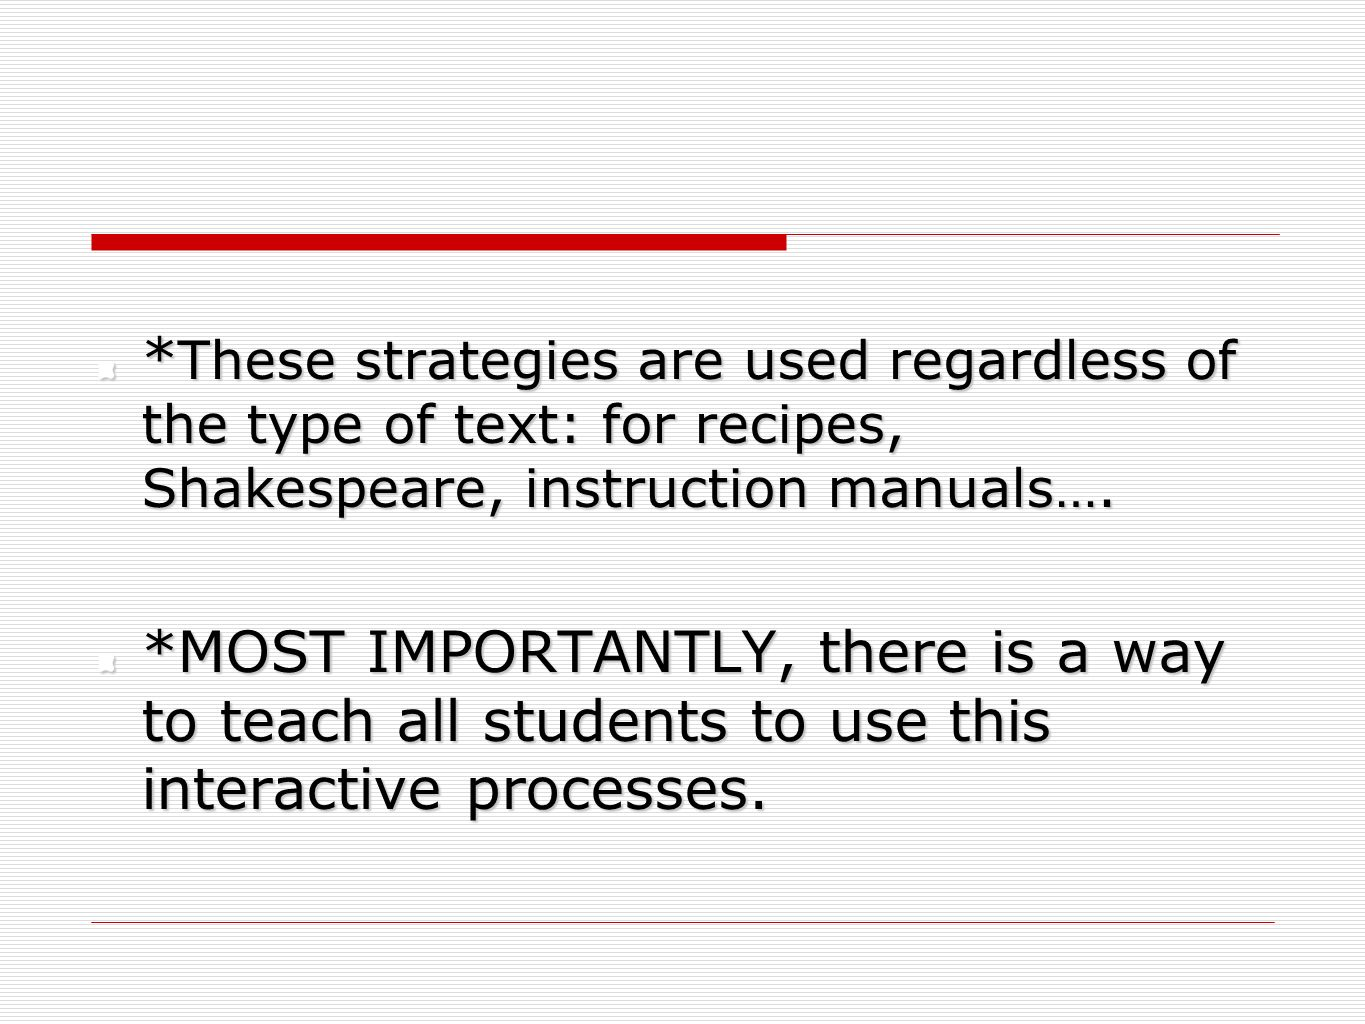 *These strategies are used regardless of the type of text: for recipes, Shakespeare, instruction manuals….